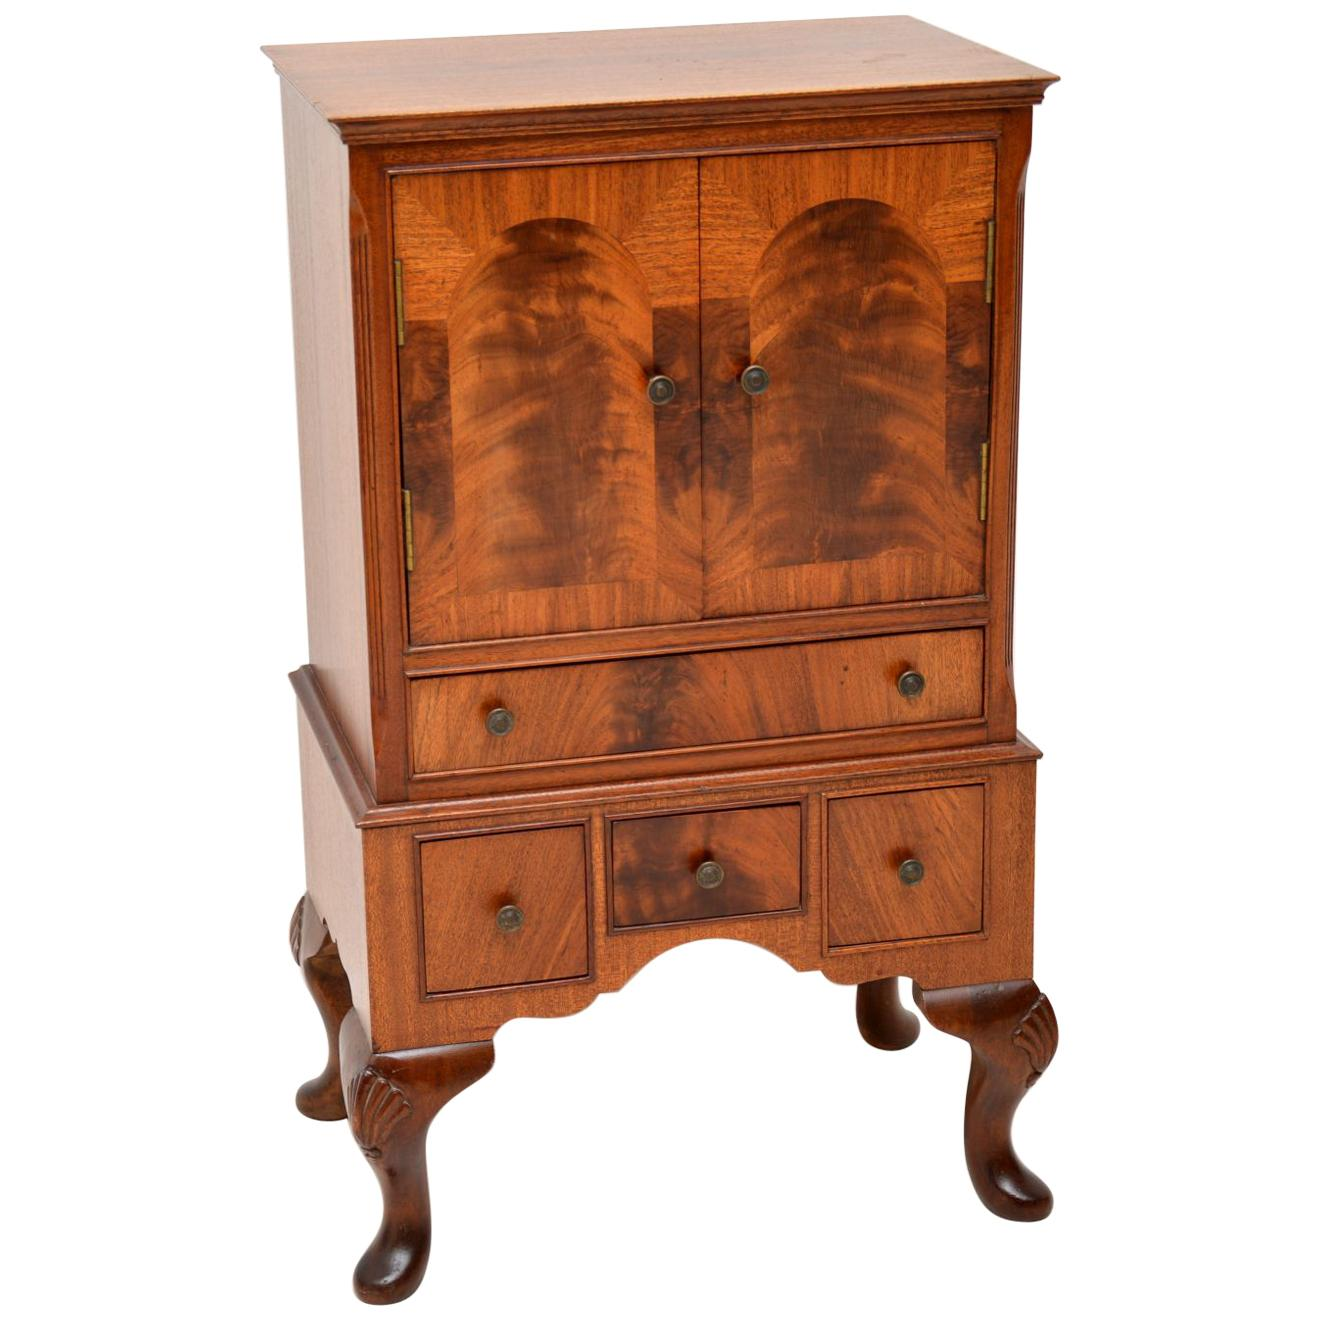 Antique Mahogany Cabinet / Glove Chest of Drawers